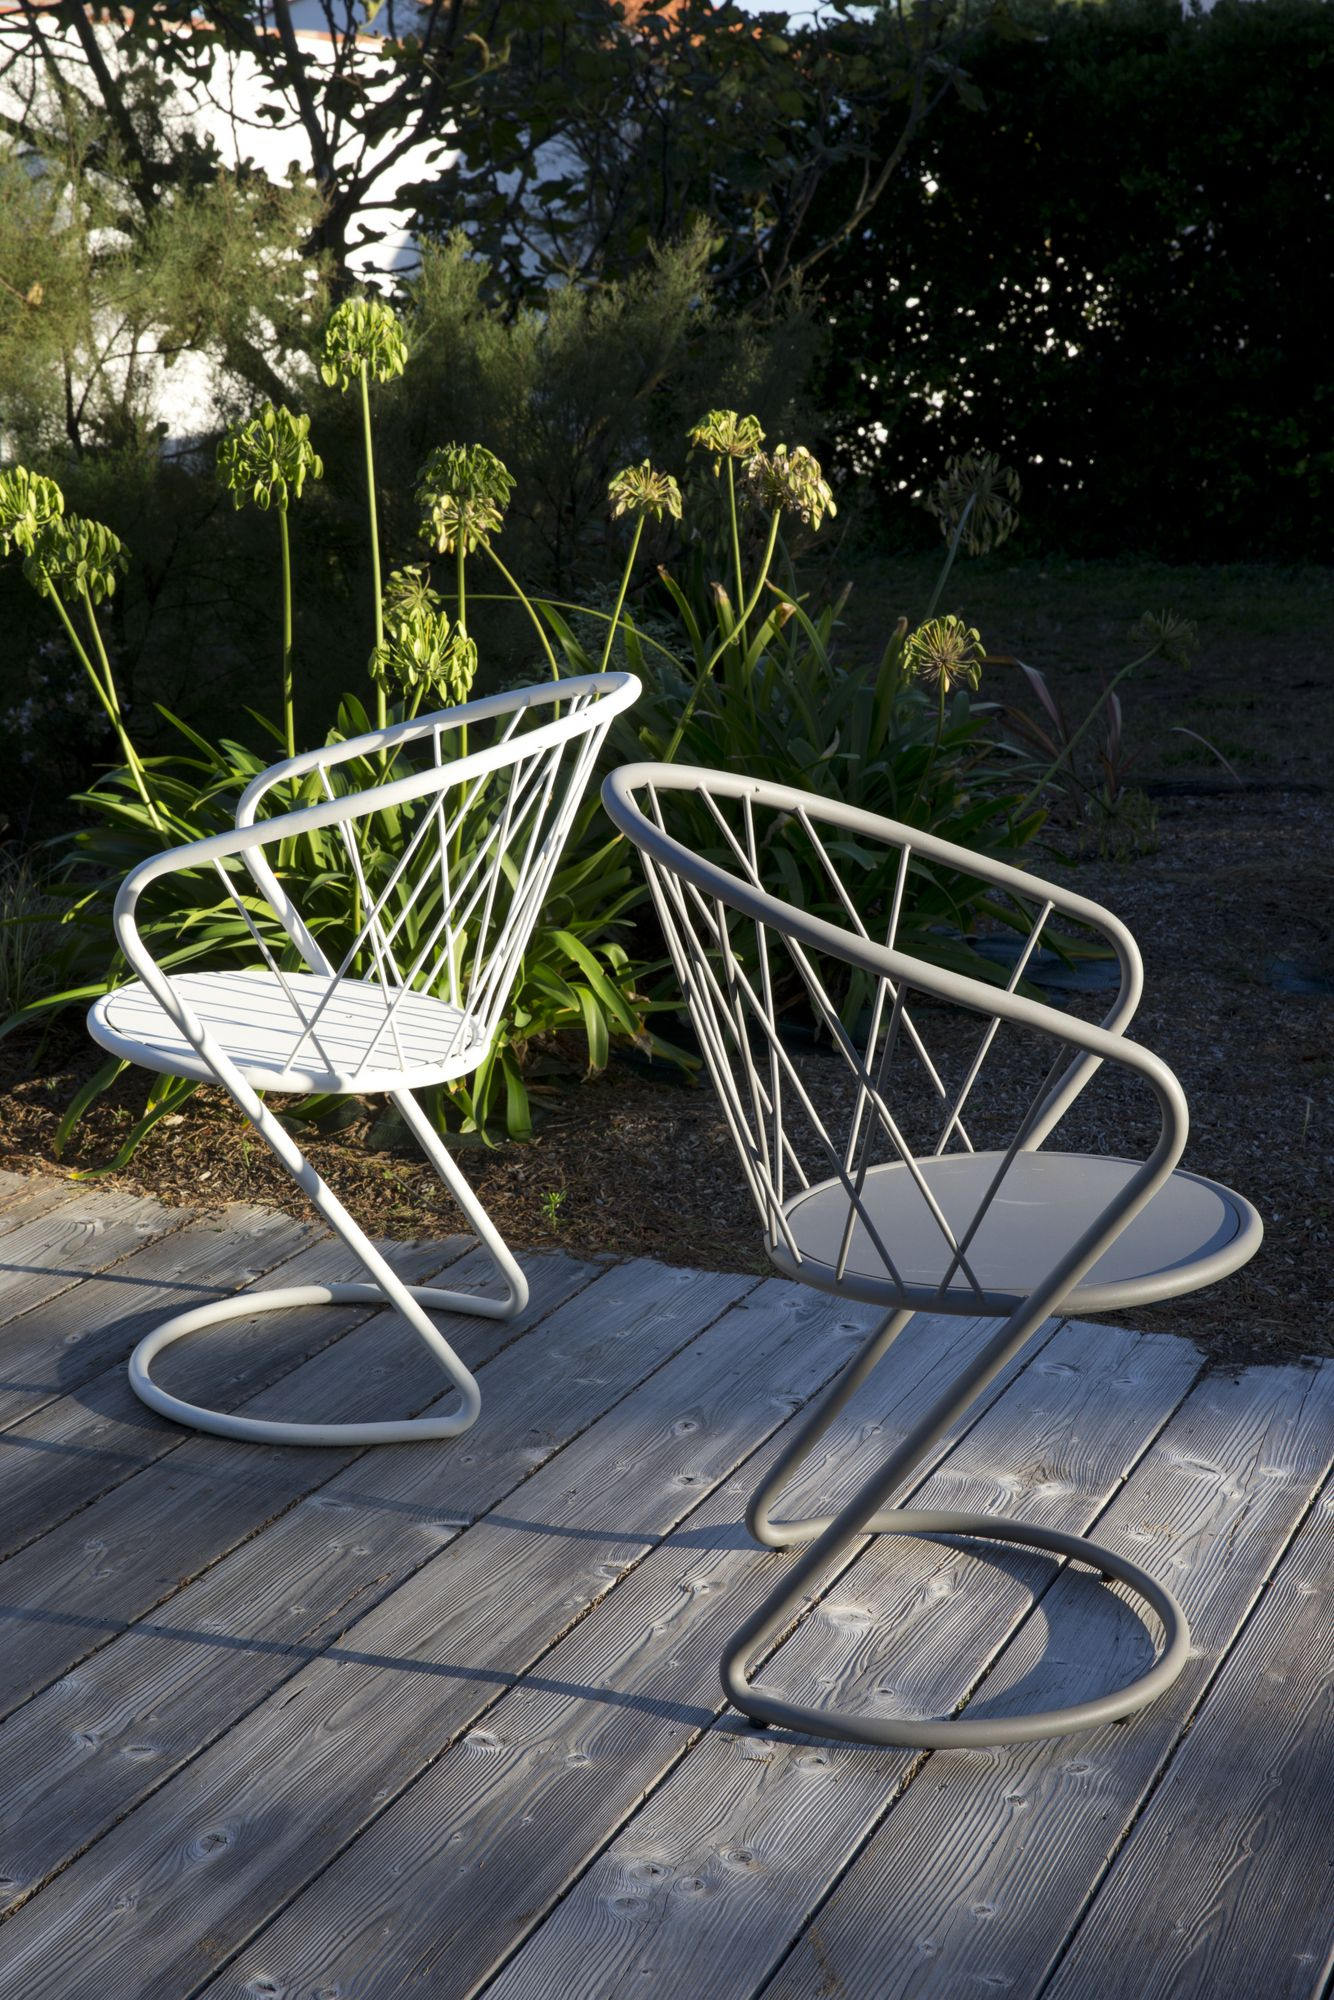 Powder coated steel garden chair with armrests KORBEILL Concept In